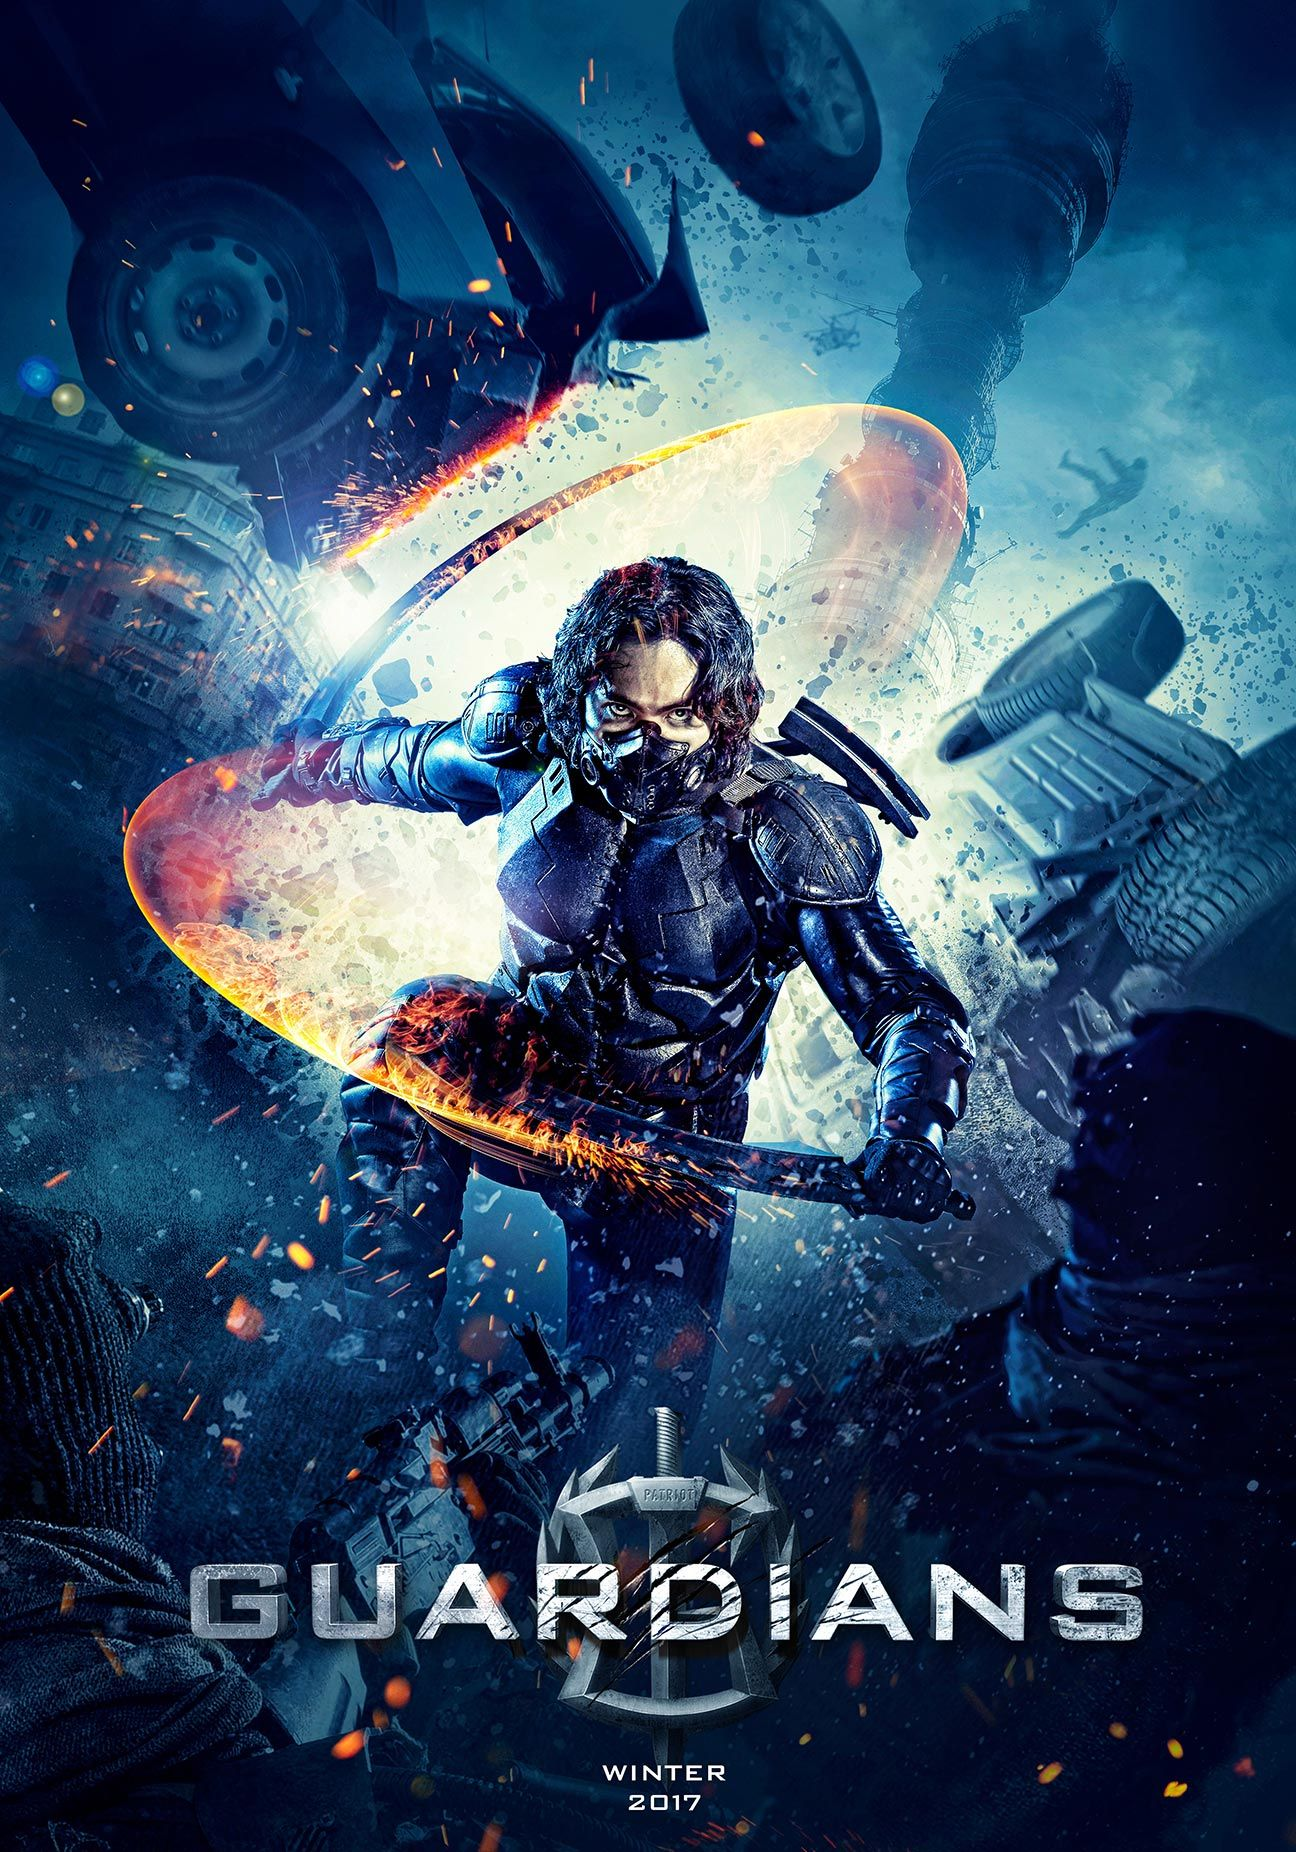 Poster design online free download - Guardians 2017 Hindi Dubbed Full Movie Watch Online Hd Print Free Download Http